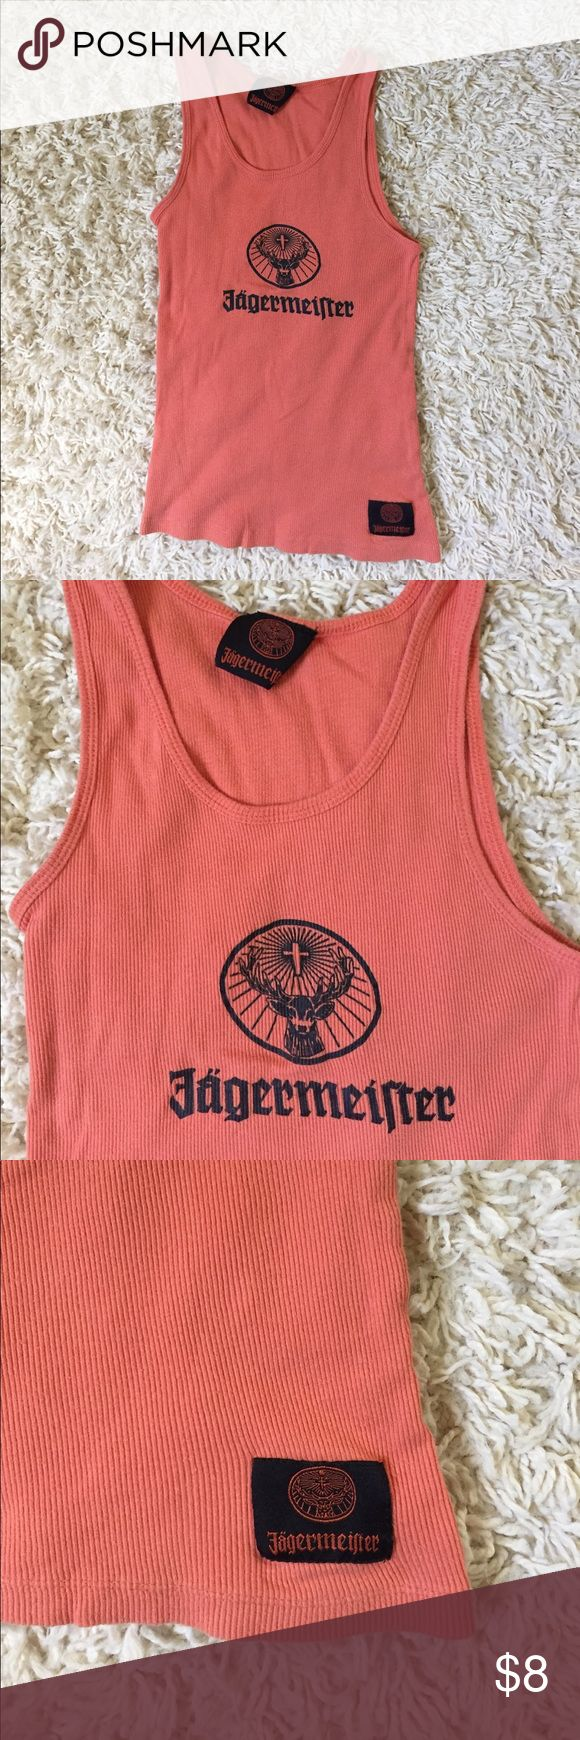 Orange and Black Jagermeister Deer Cross Logo Tank Orange and black wife beater style tank from Jagermeister with their logo on front.                           Tag size size Large but it's honestly a small or xs. There is some minor unraveling at bottom hem on back that you can see in photo. I think this may have been an irregular make because it was tagged incorrectly and the seems don't match up exactly. But would still be a cute summer tank or to wear under leather or jean jacket. Great…